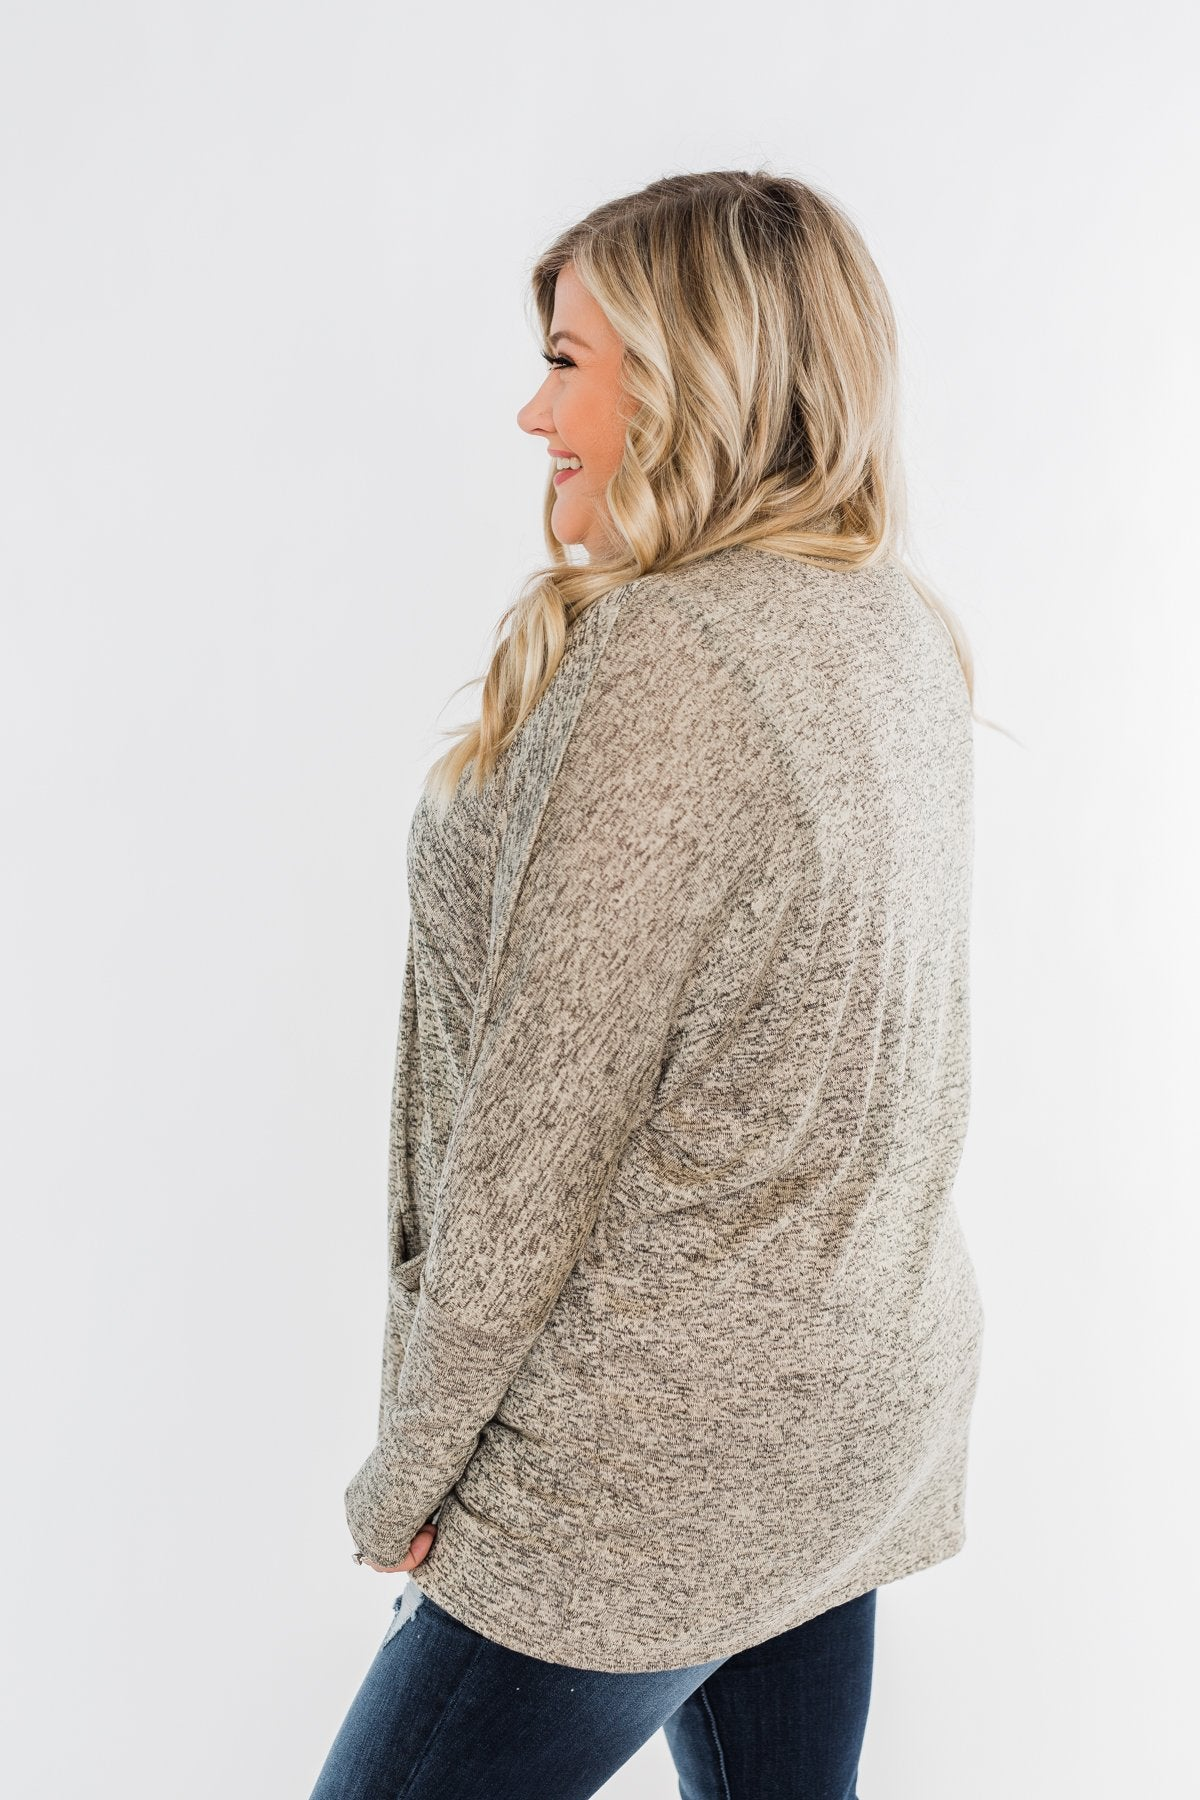 In Your Heart Dolman Cardigan- Heathered Beige